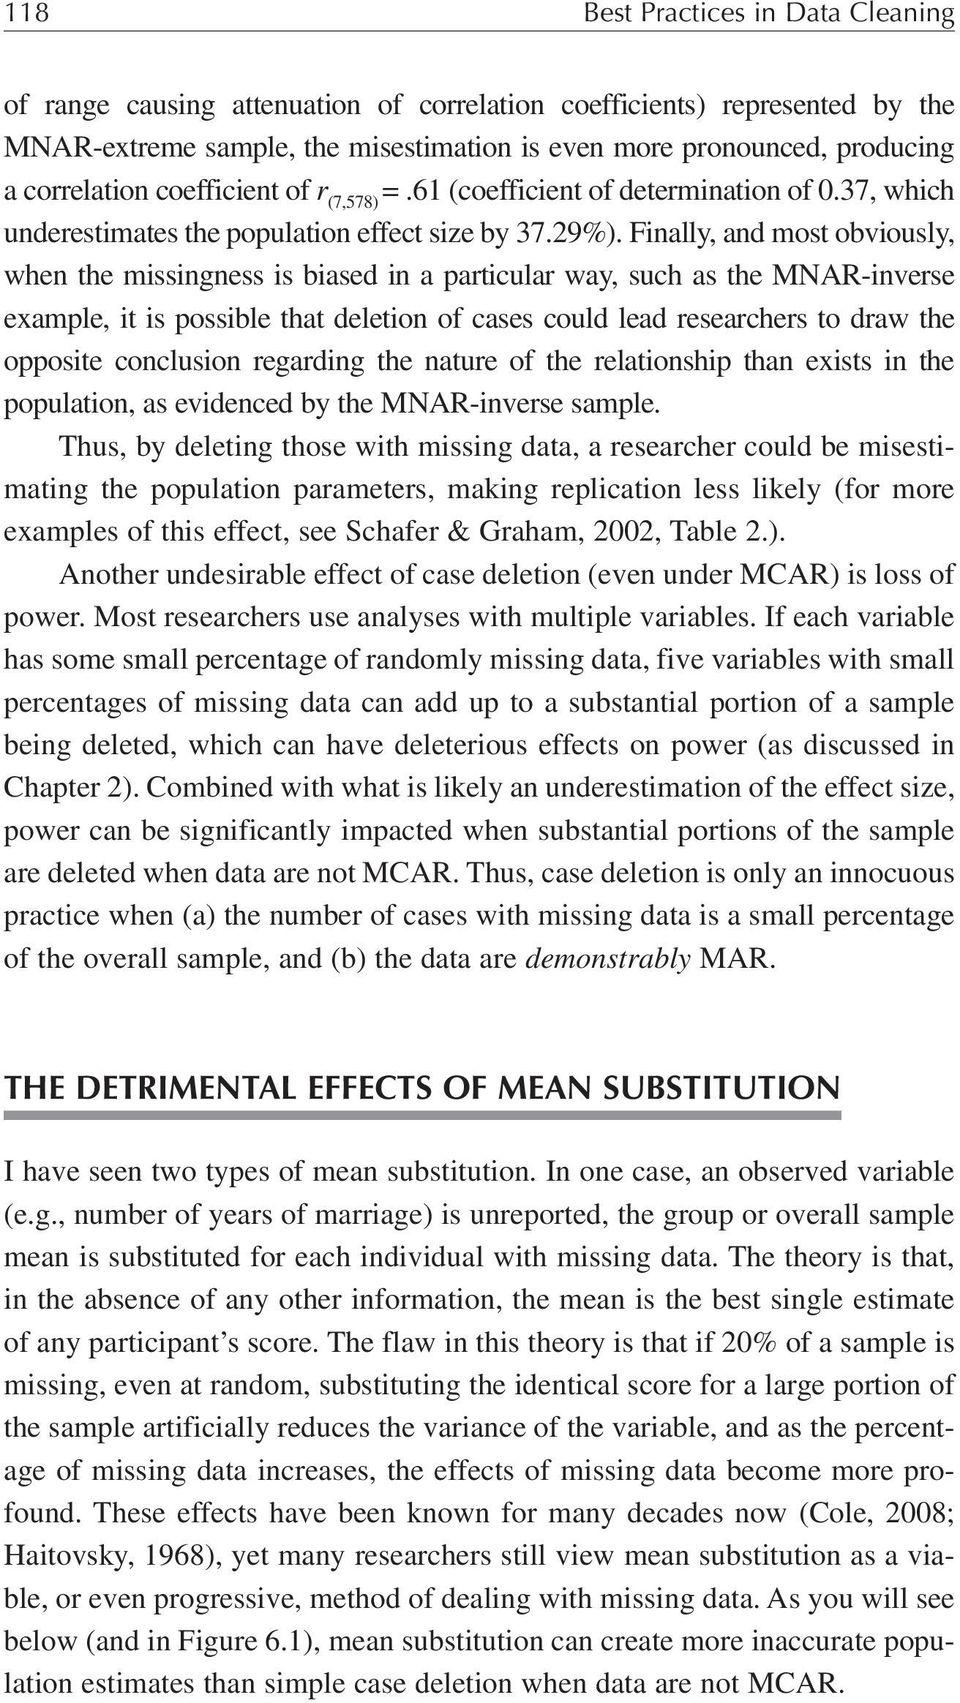 Finally, and most obviously, when the missingness is biased in a particular way, such as the MNAR-inverse example, it is possible that deletion of cases could lead researchers to draw the opposite